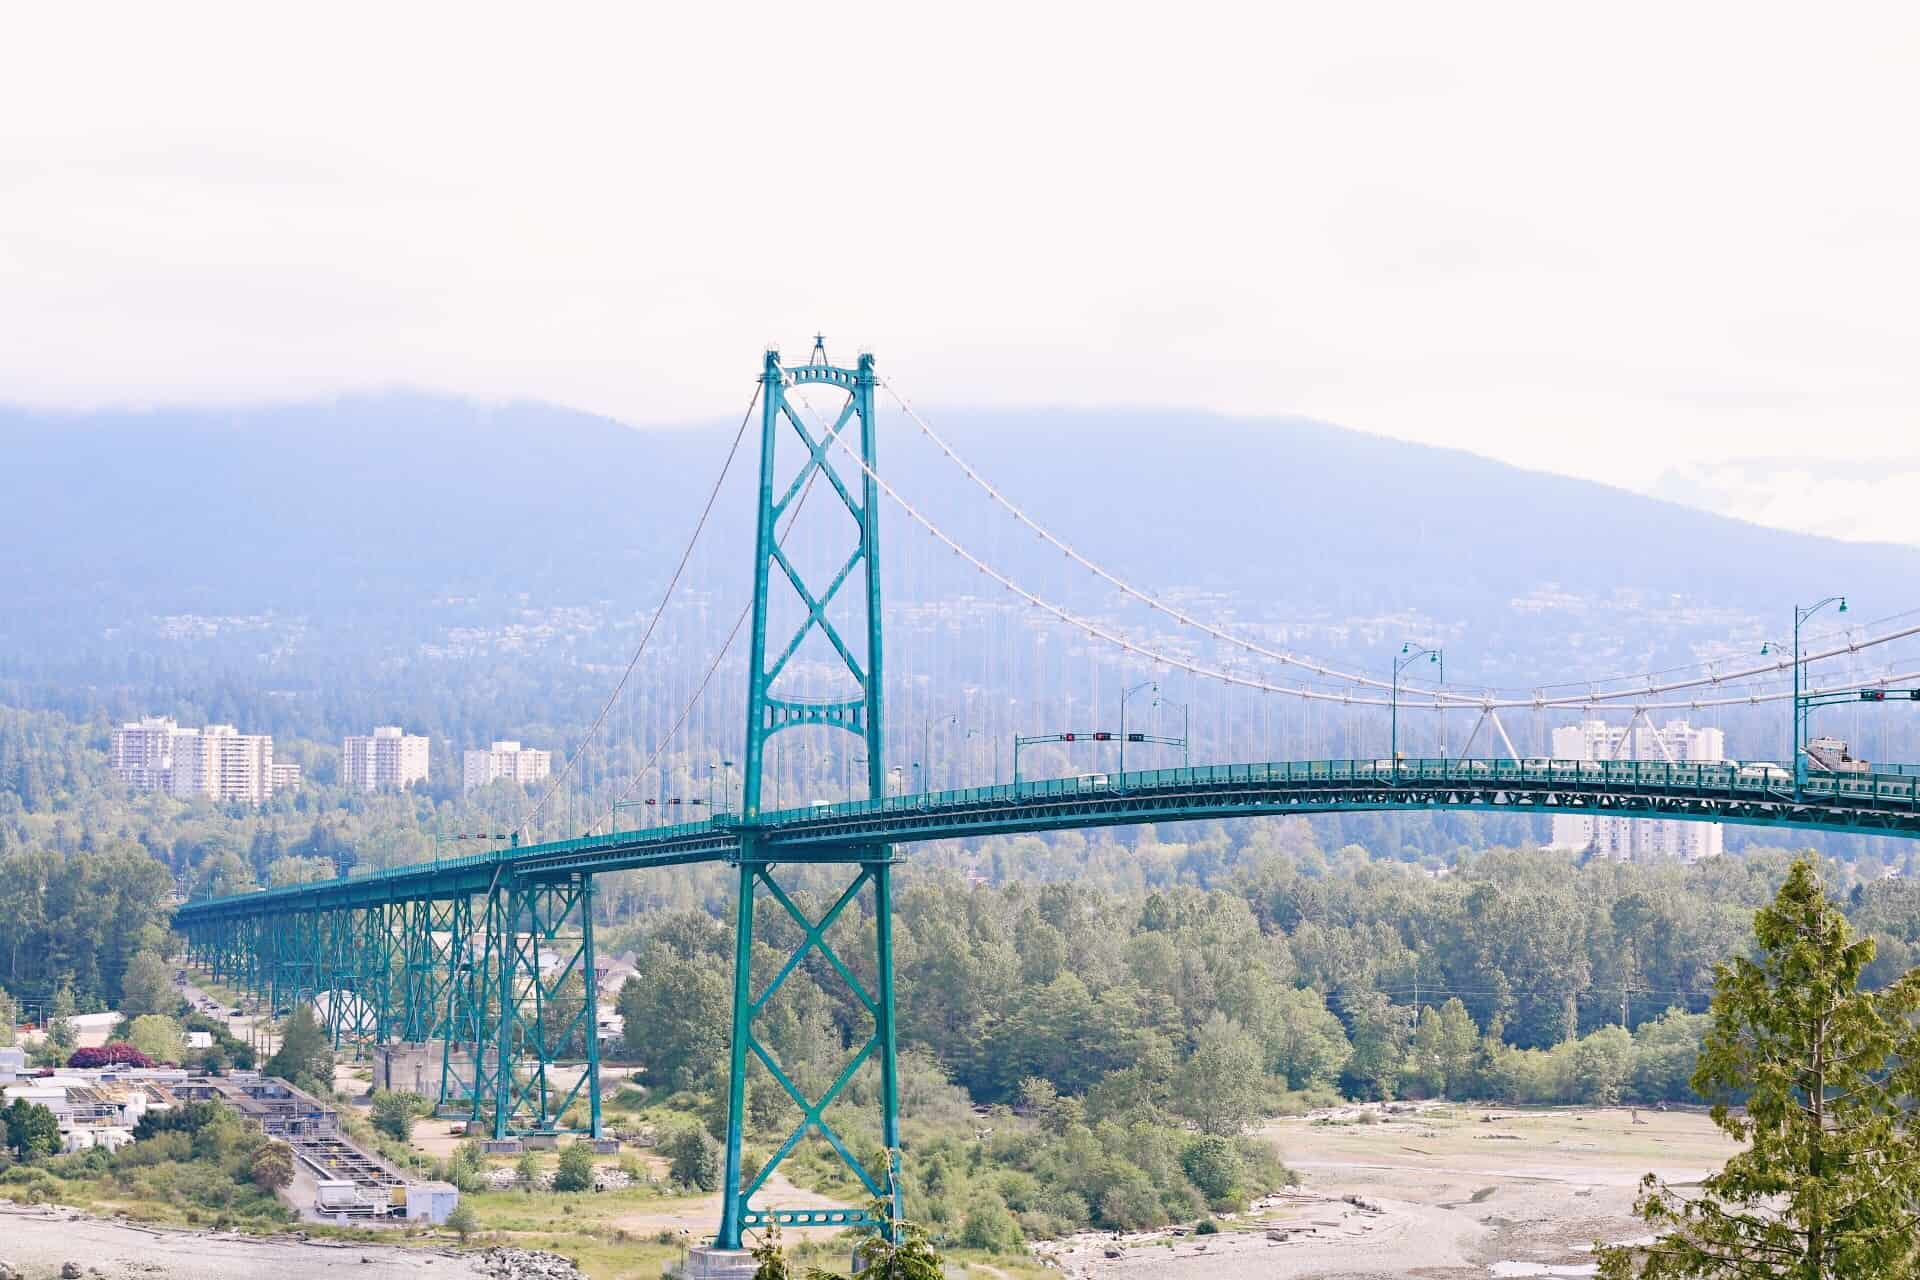 Lions Gate Bridge, Stanley Park Seawall | Vancouver, British Columbia | best things to do in Vancouver, BC